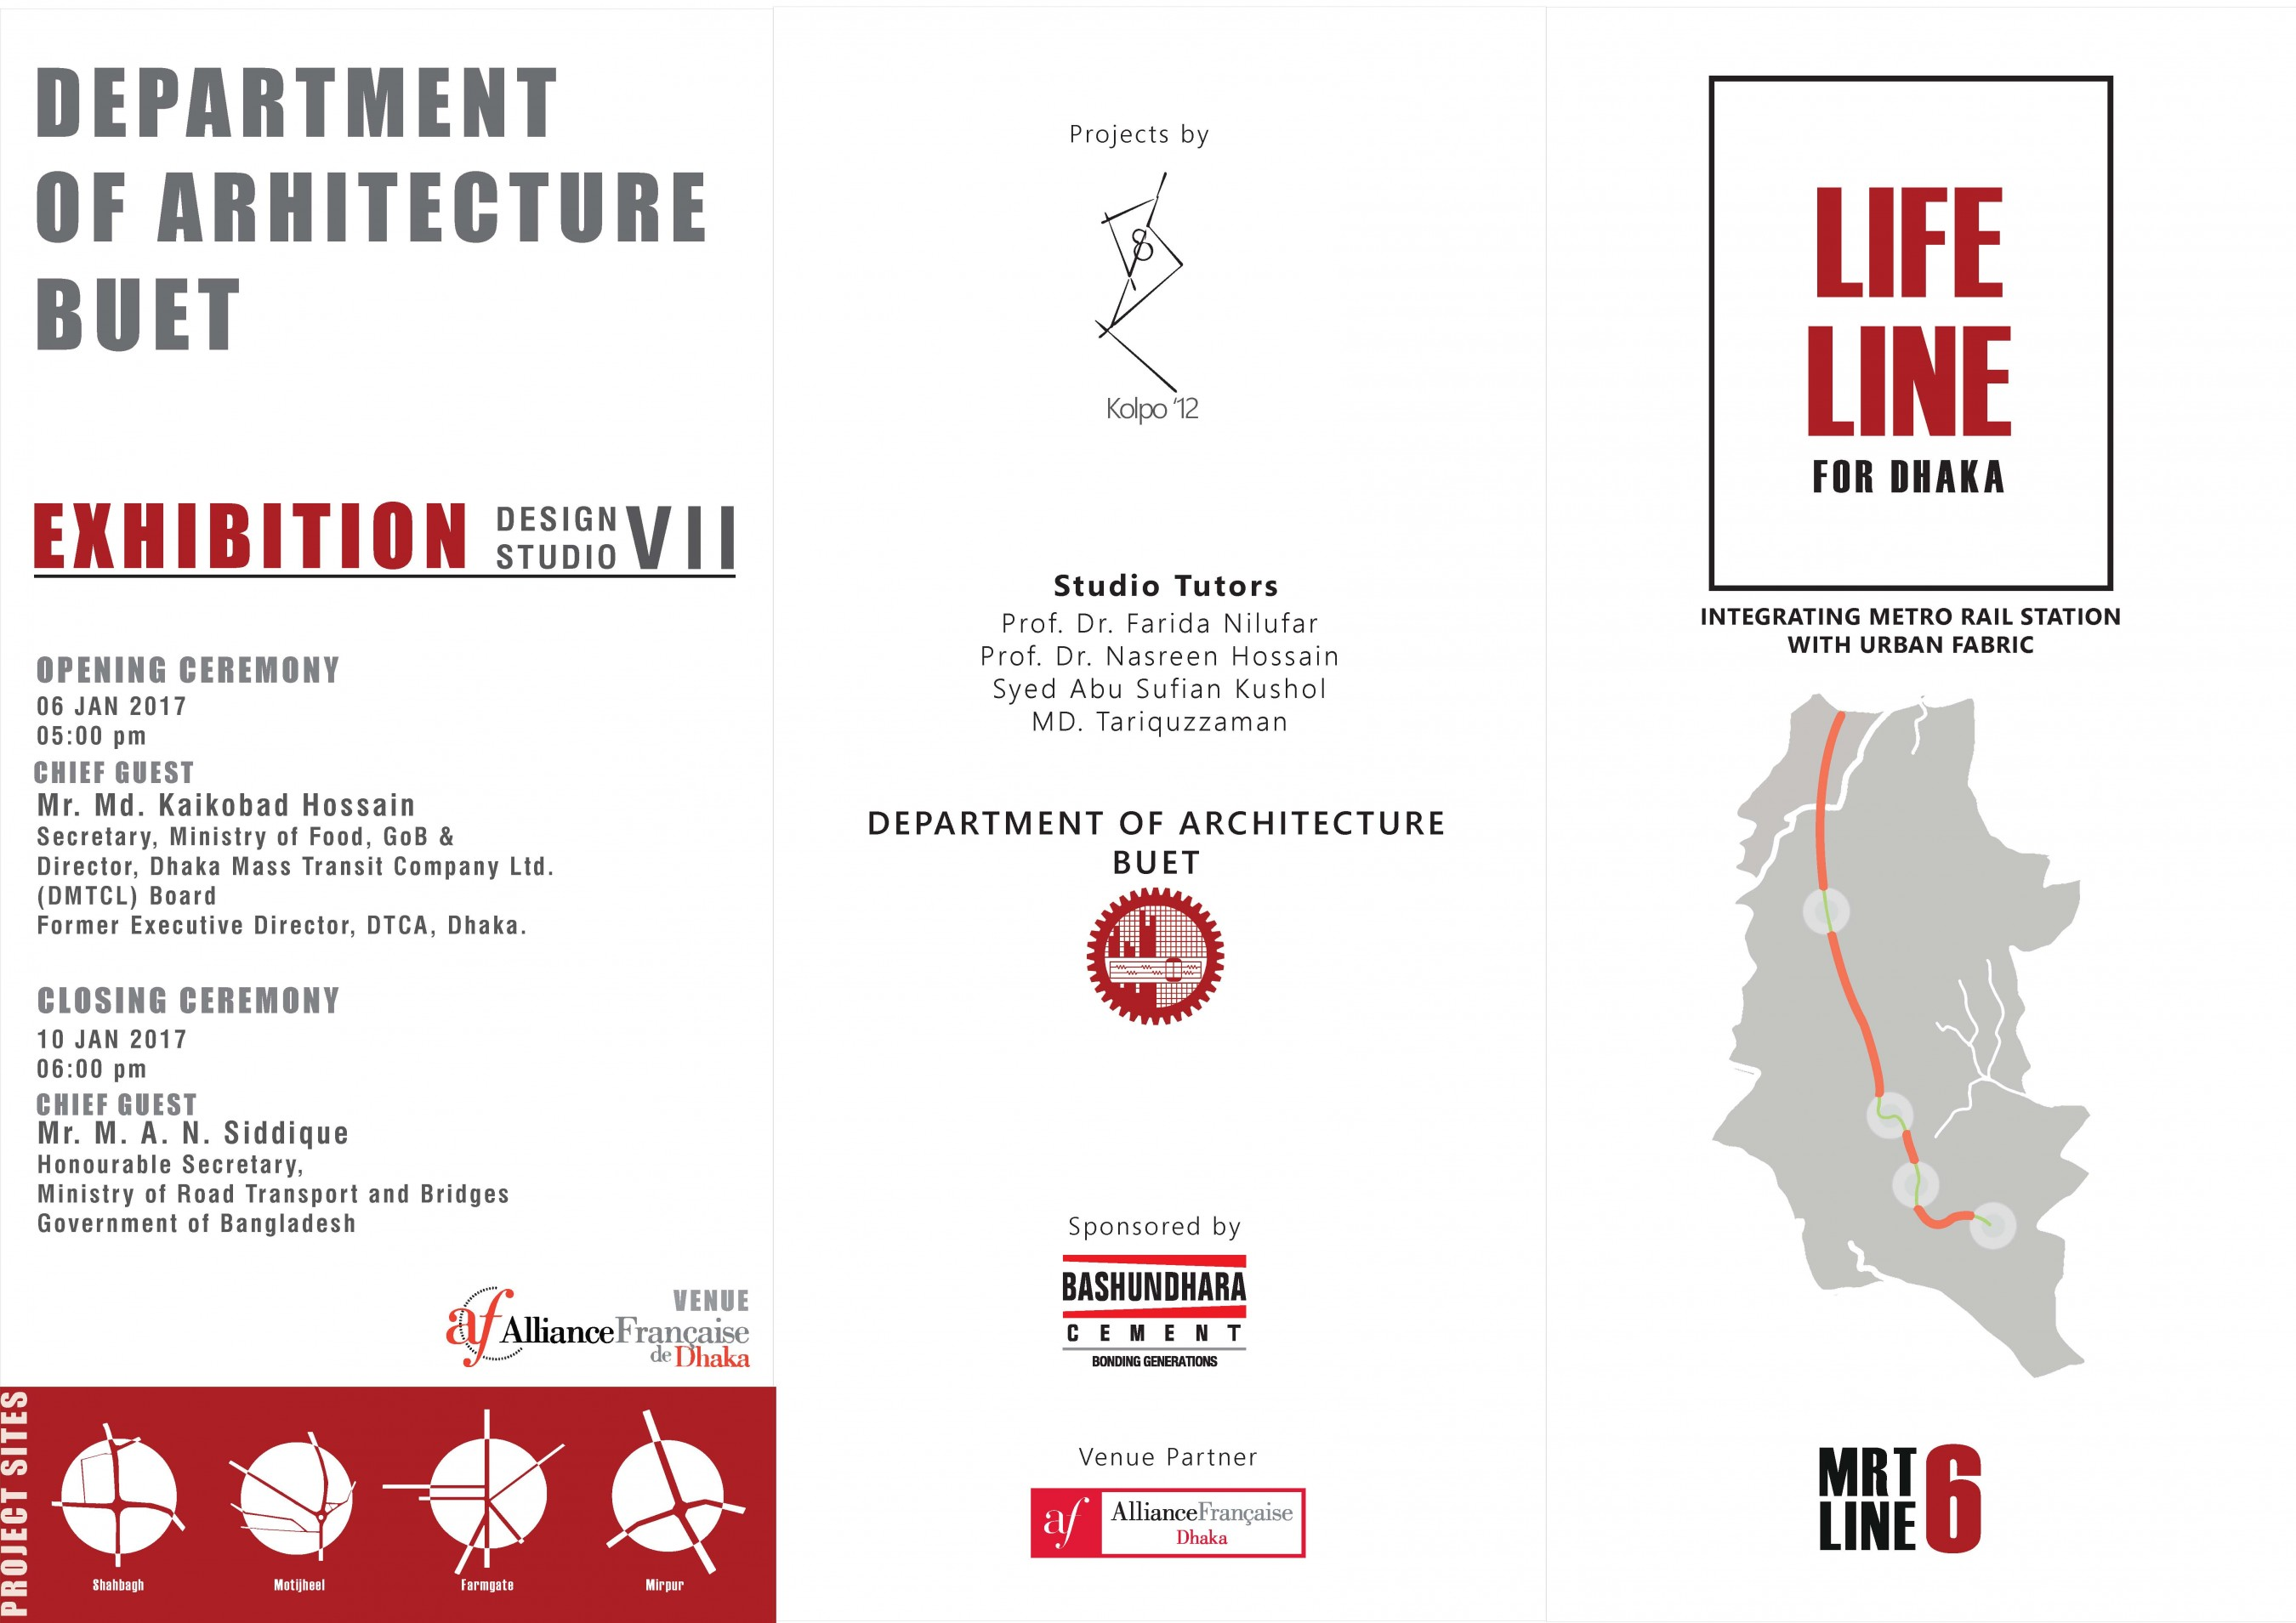 Exhibition: Life Line For Dhaka